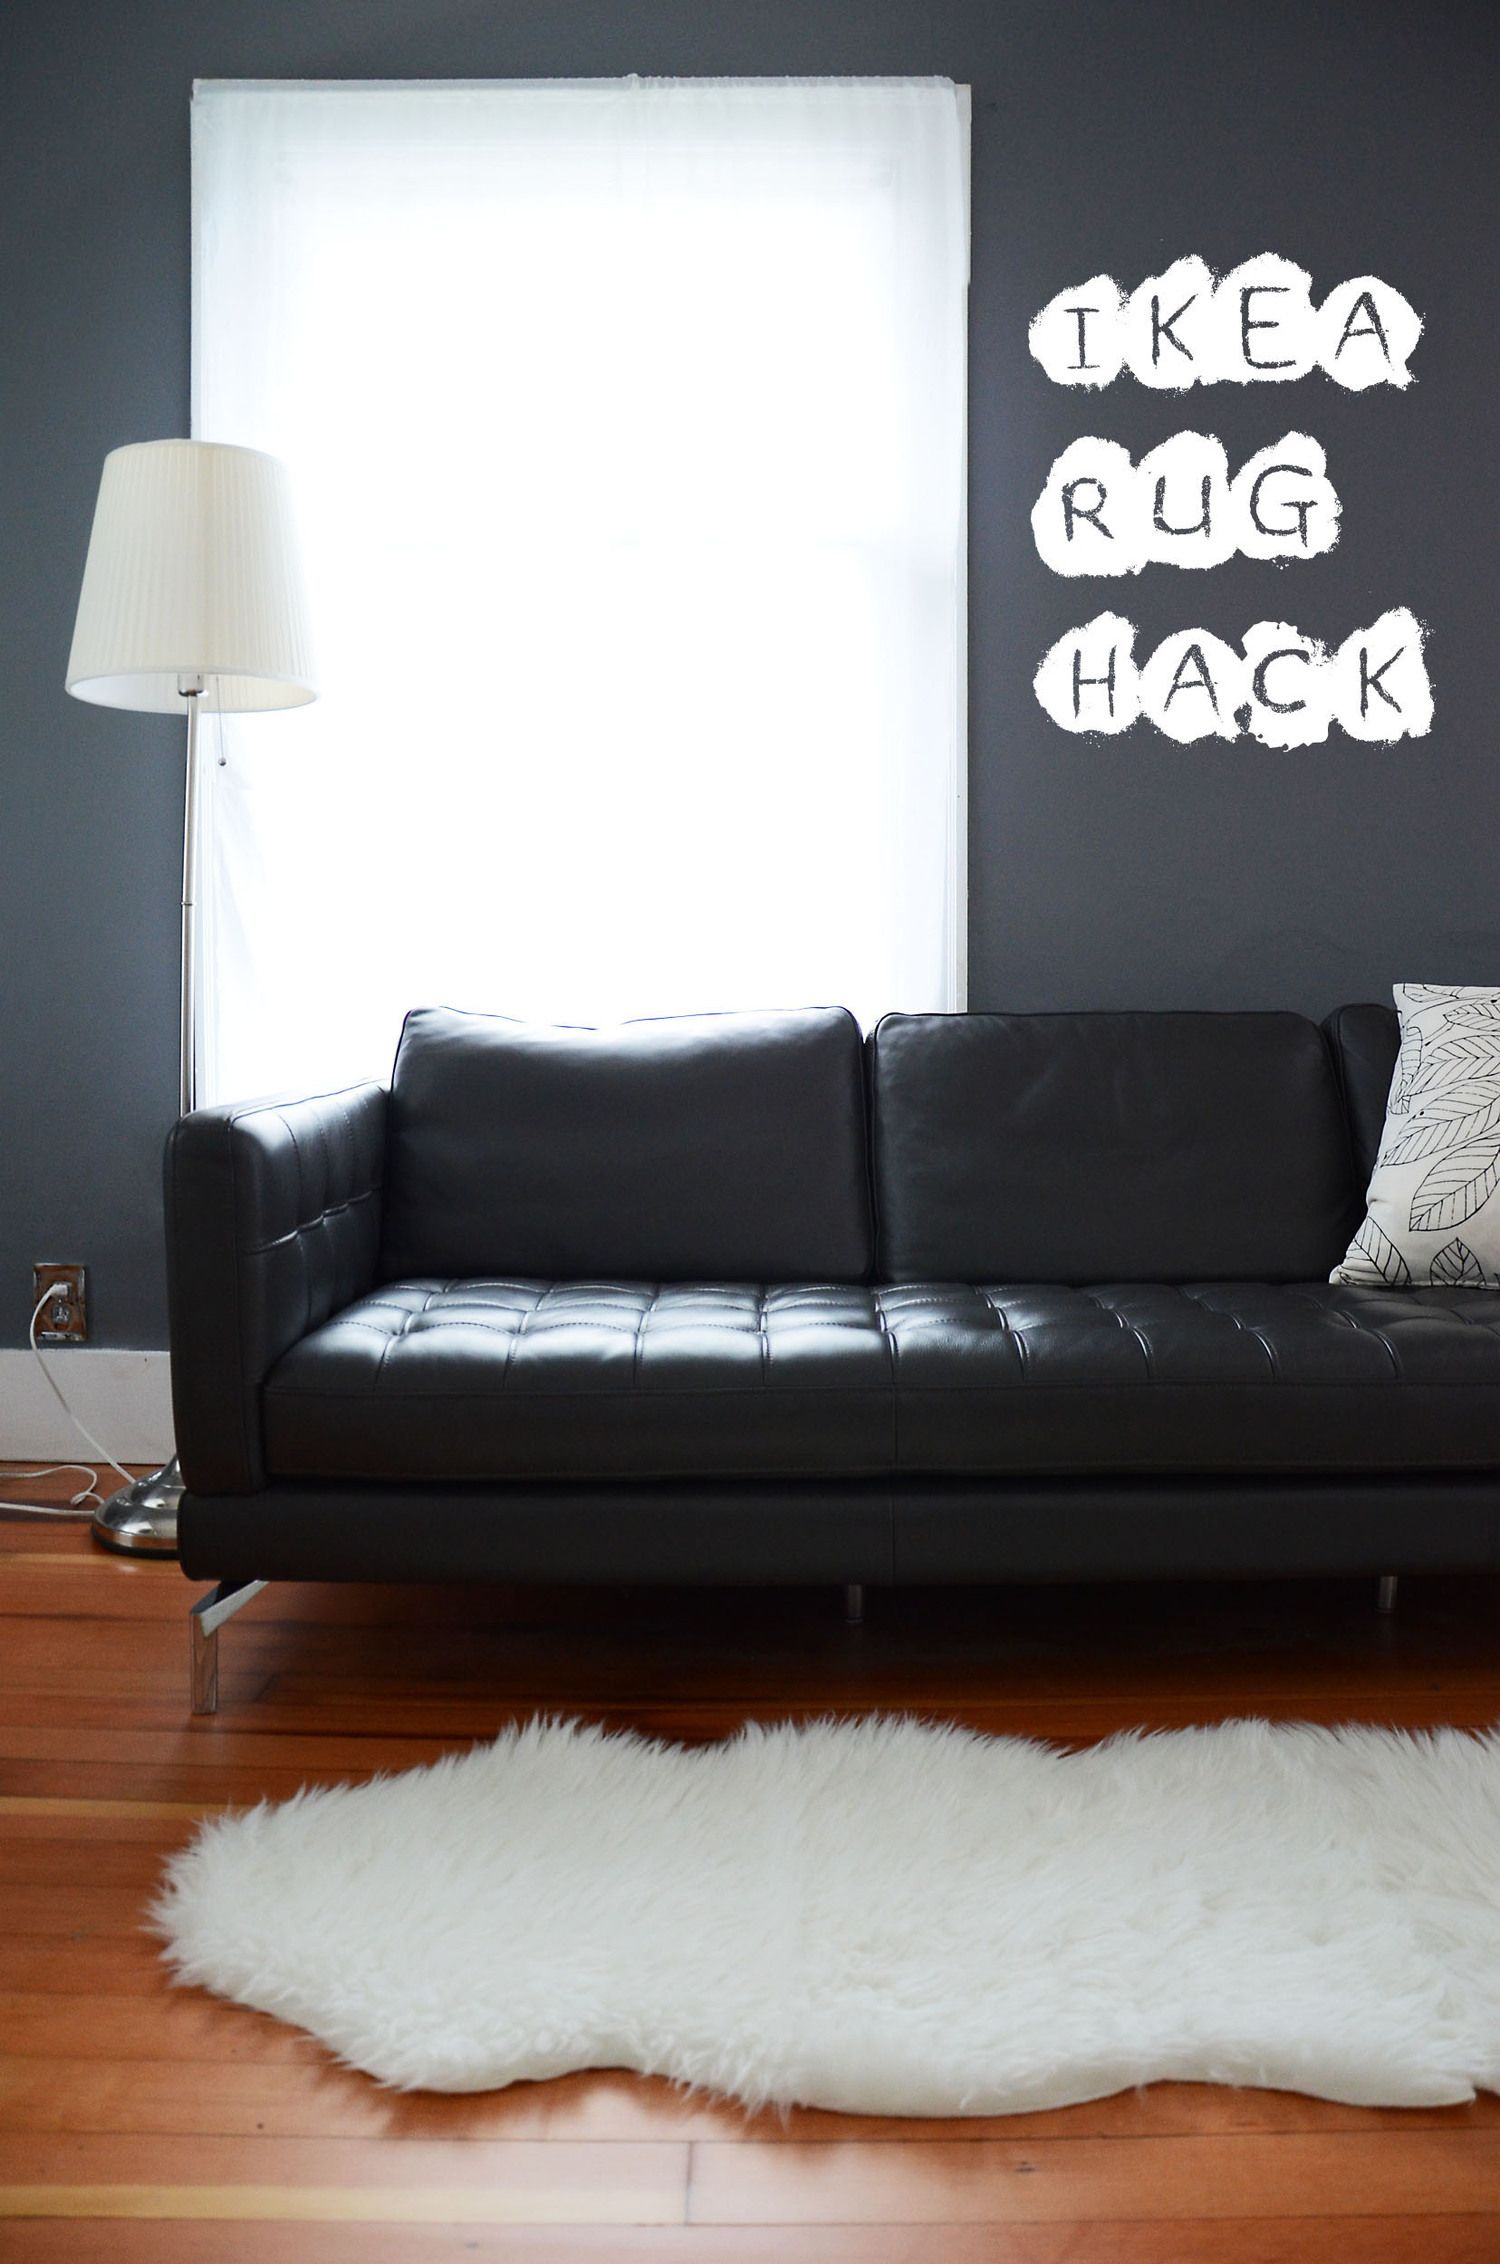 sew two ikea sheepskin rugs together to make one big one makes rh pinterest com